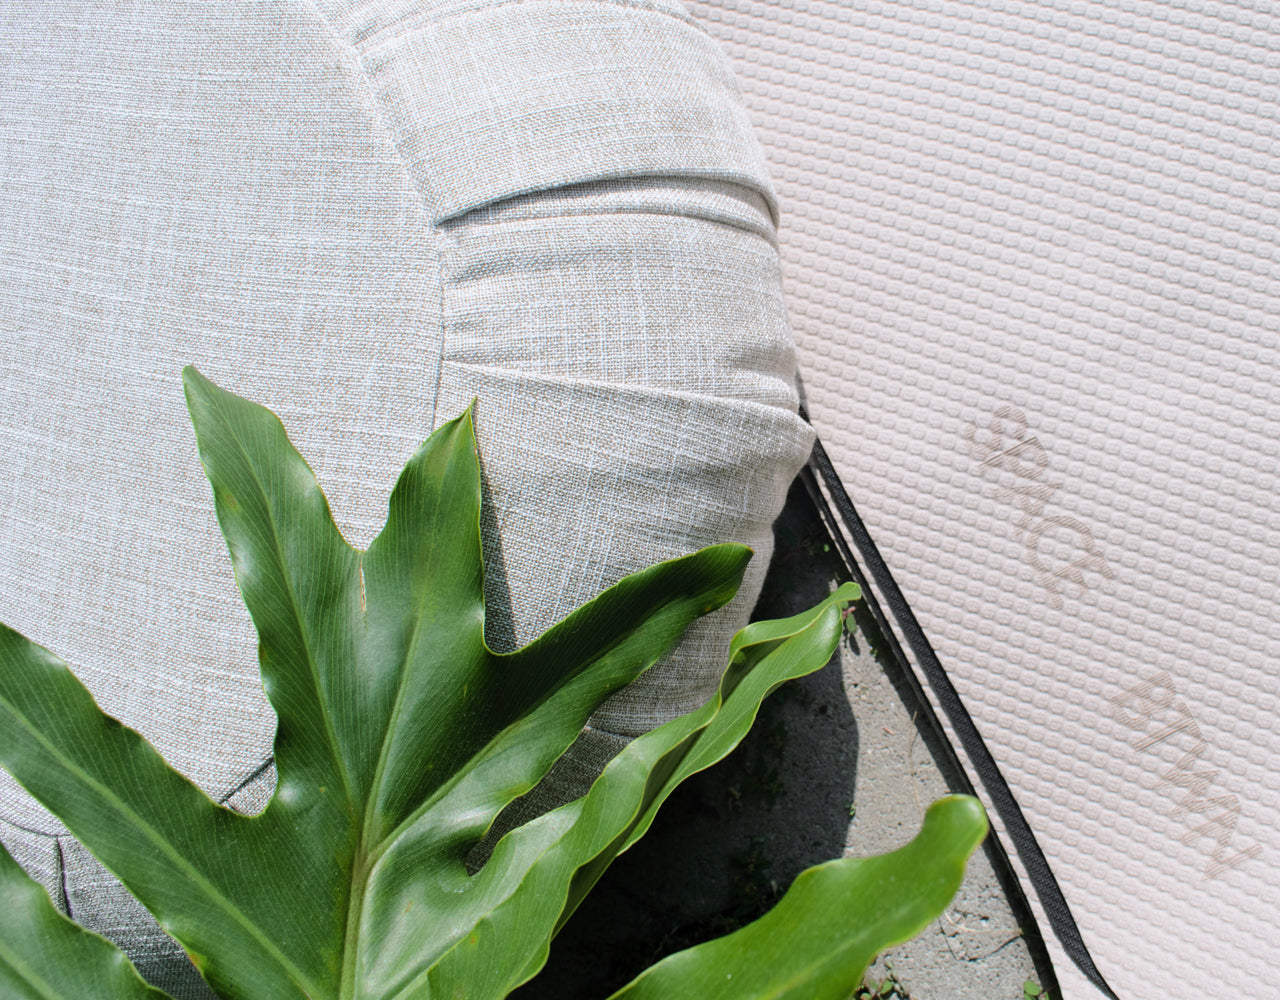 a plant leaf displayed on a meditation pillow and yoga mat